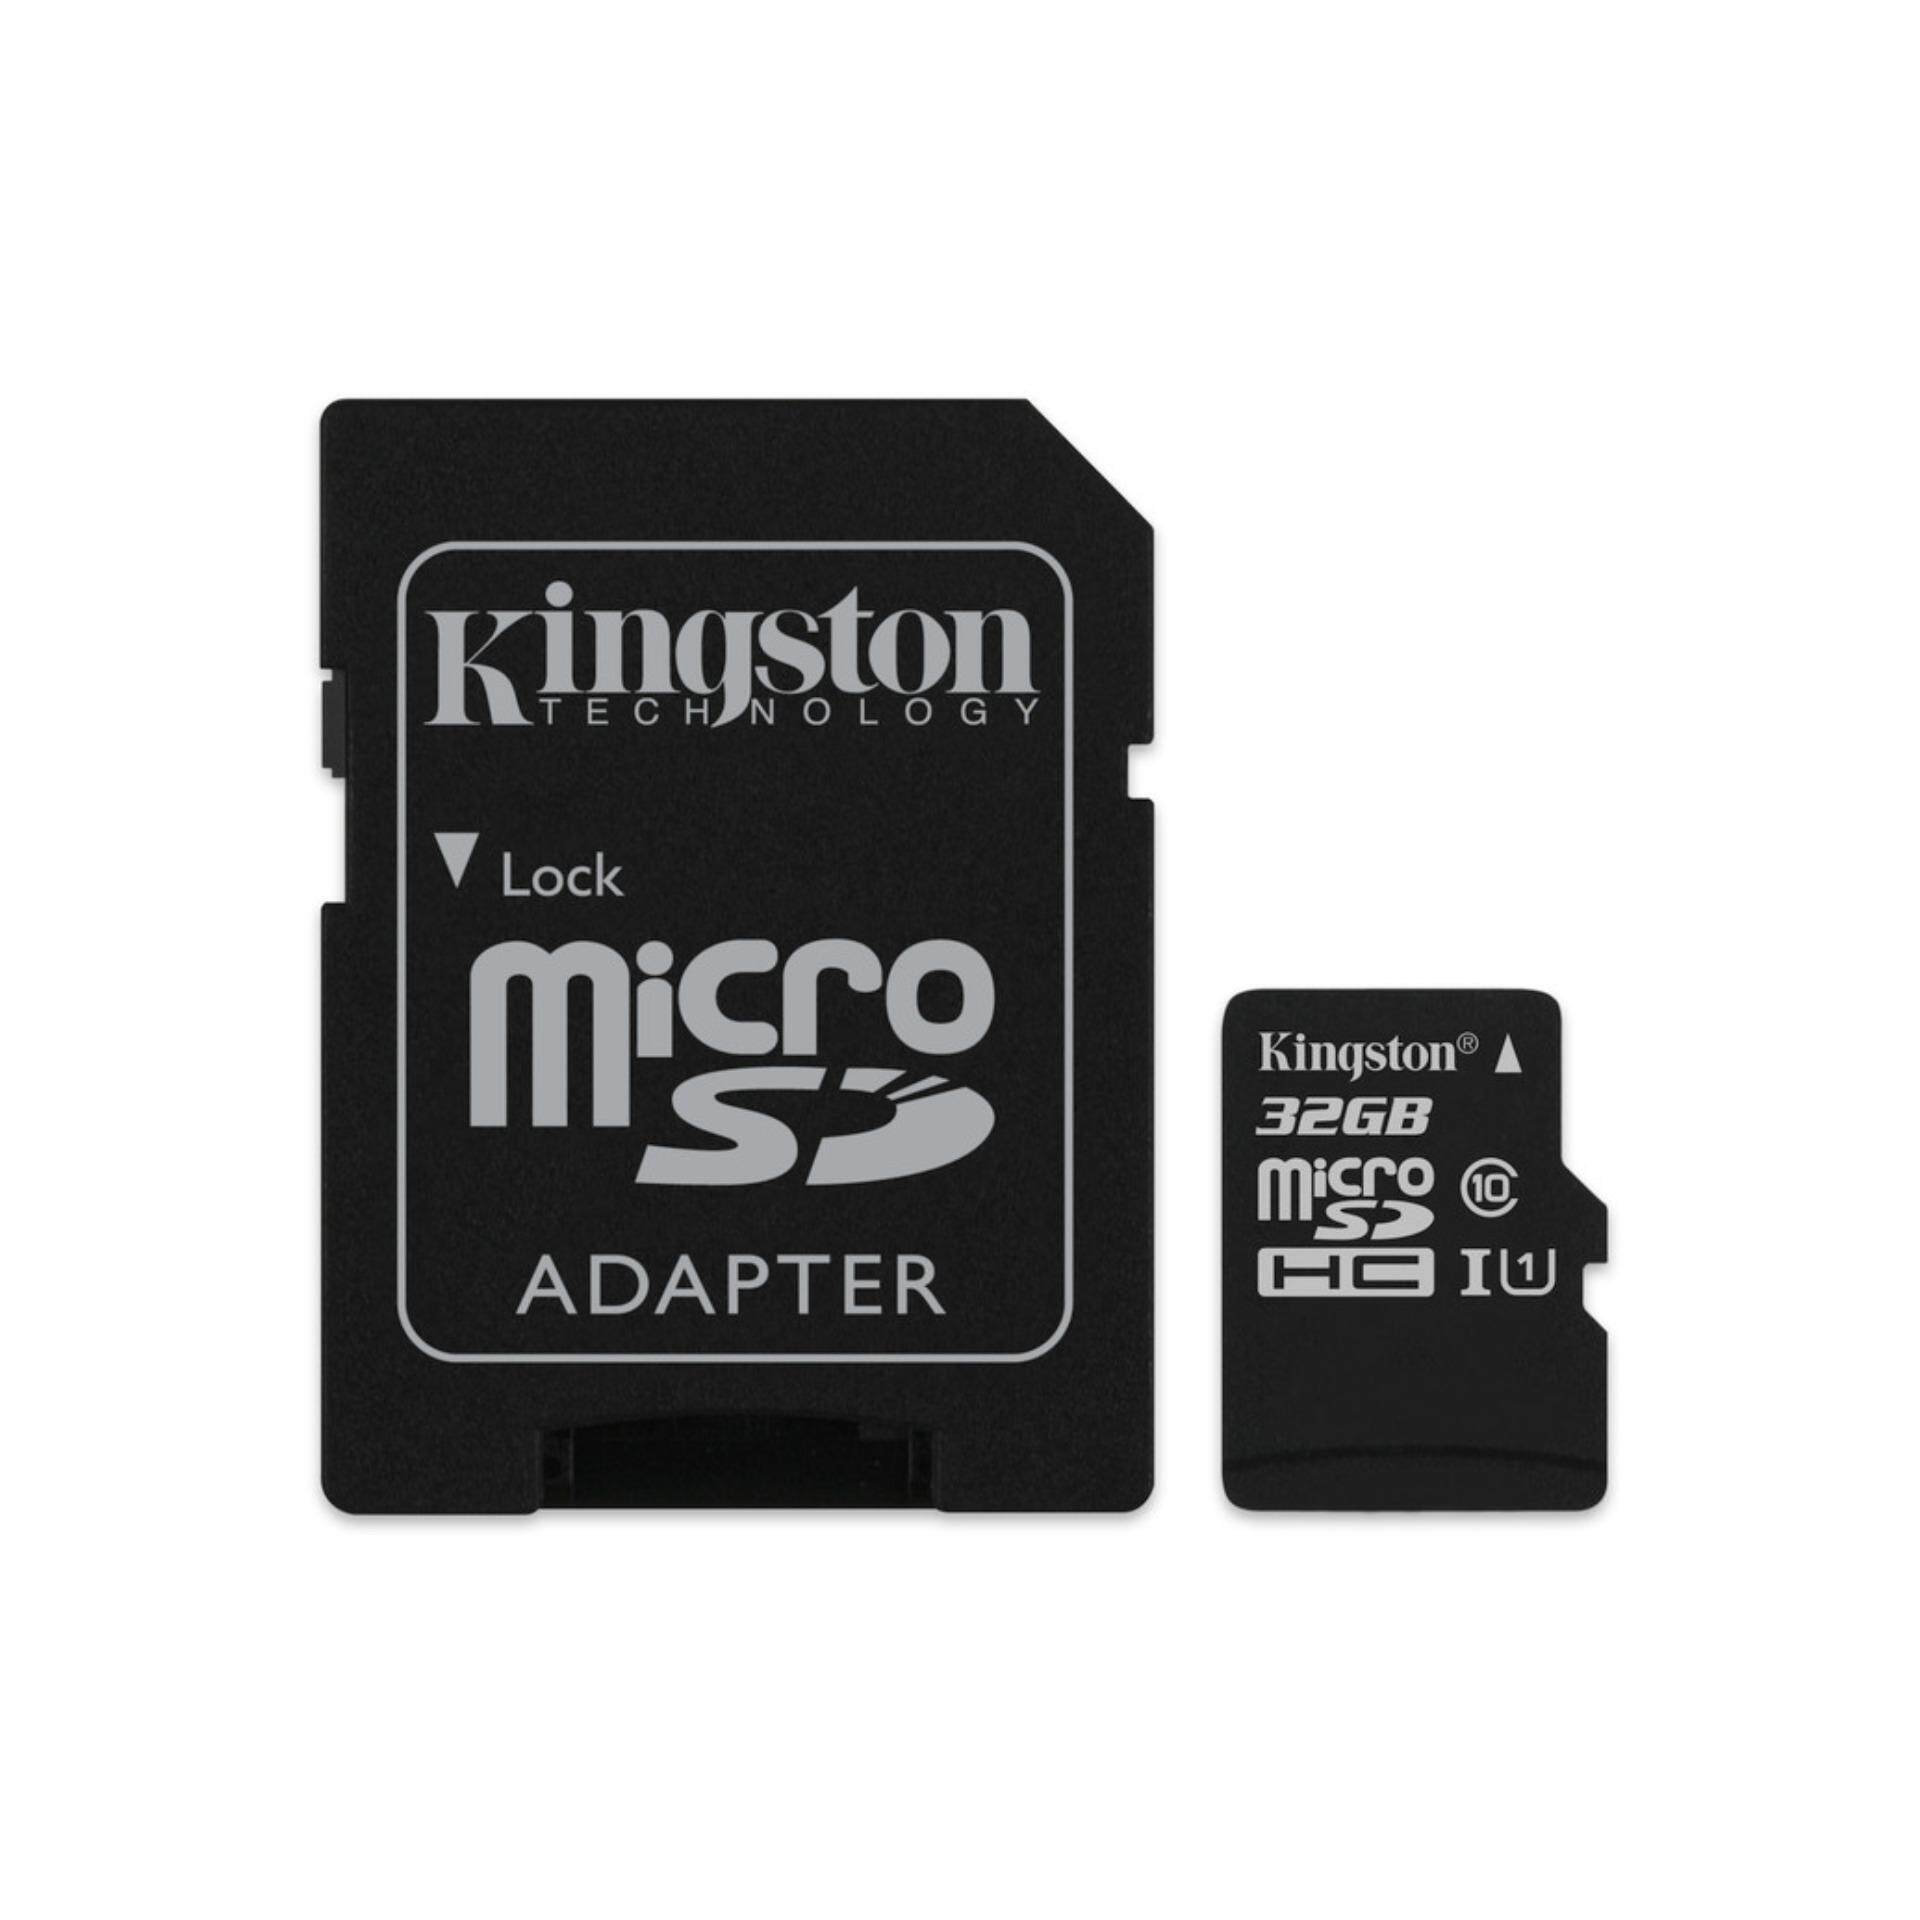 Kingston microSDHC Canvas Select 80R CL10 UHS-I Card + SD Adapter(Compatible, Non-proprietary)